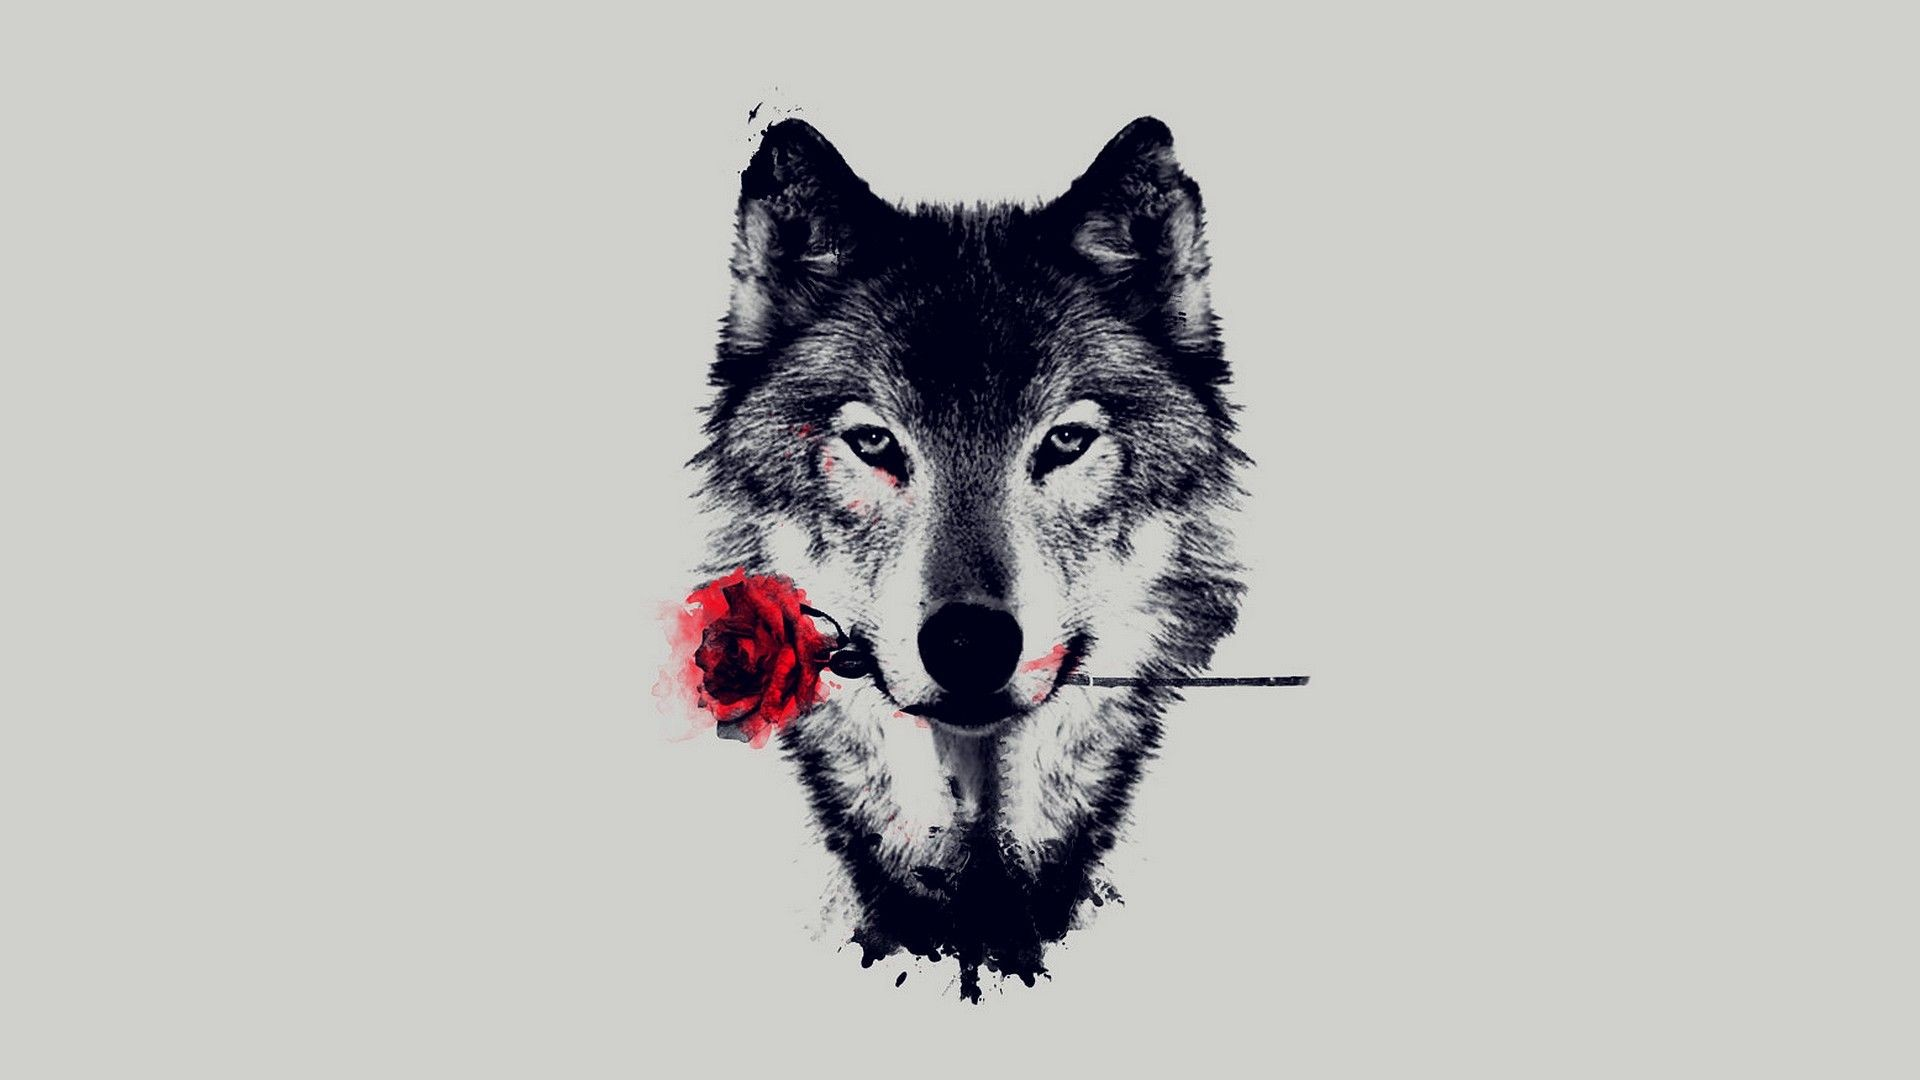 Res: 1920x1080, Wolf Art 19 HD Images Wallpapers | HD Image Wallpaper